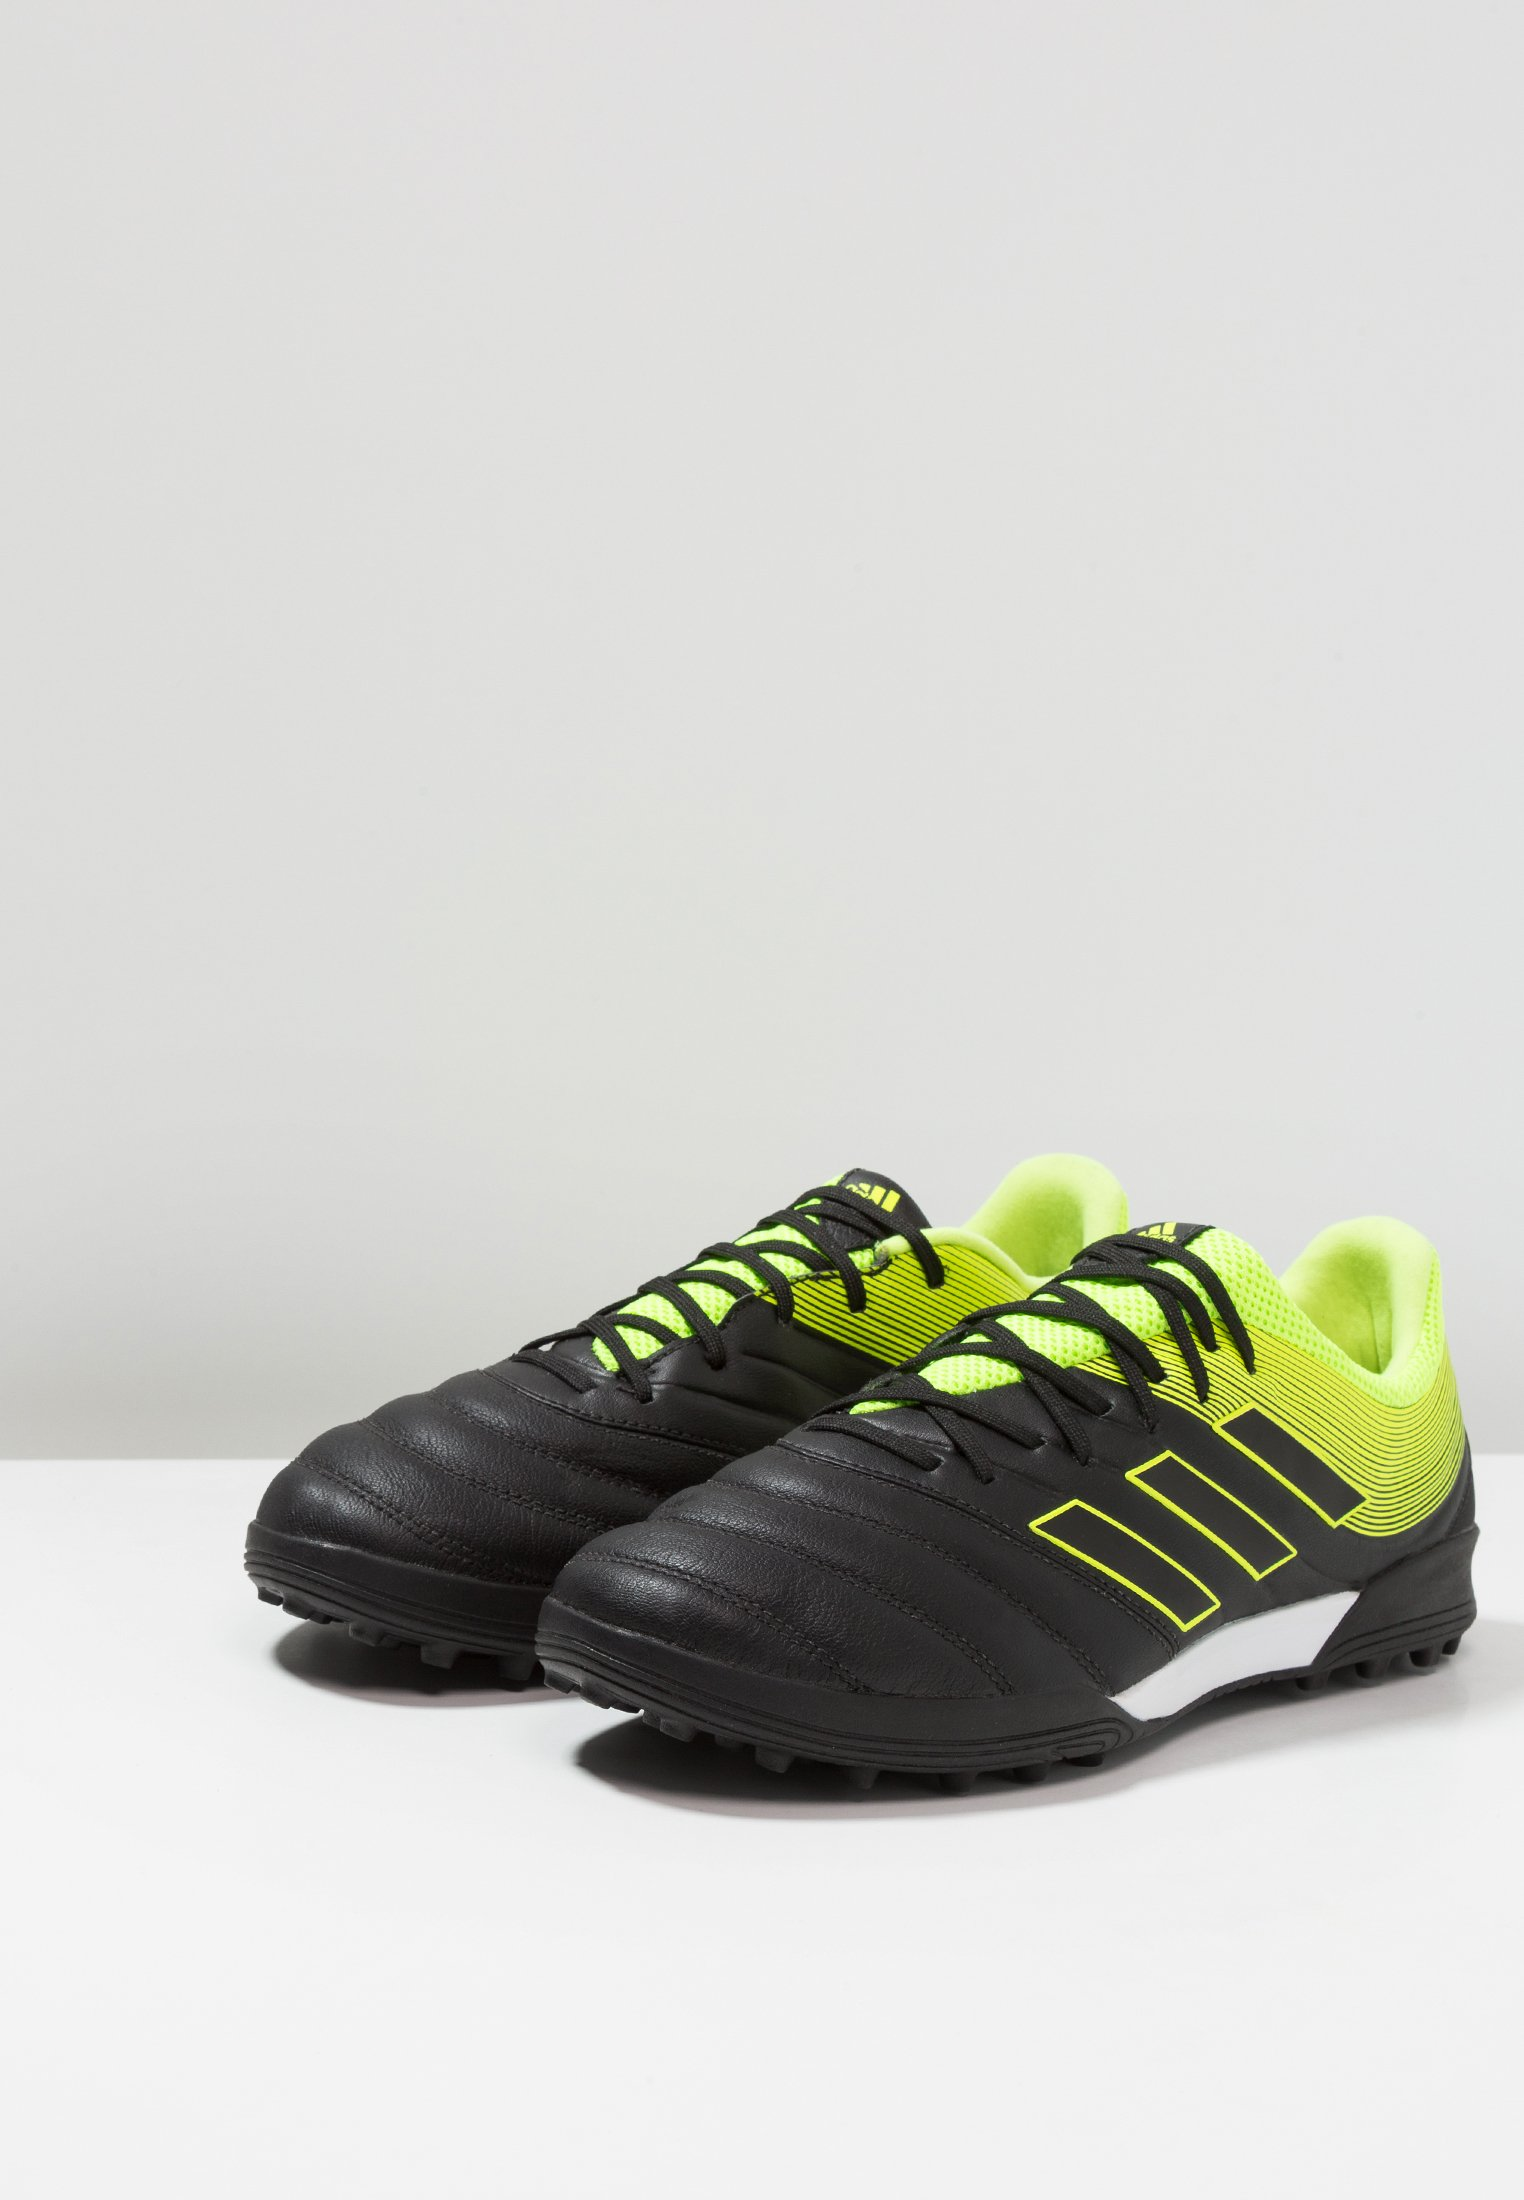 Copa TfChaussures Black Adidas 3 Yellow Foot Performance 19 solar Multicrampons Core De 3jqc4ALR5